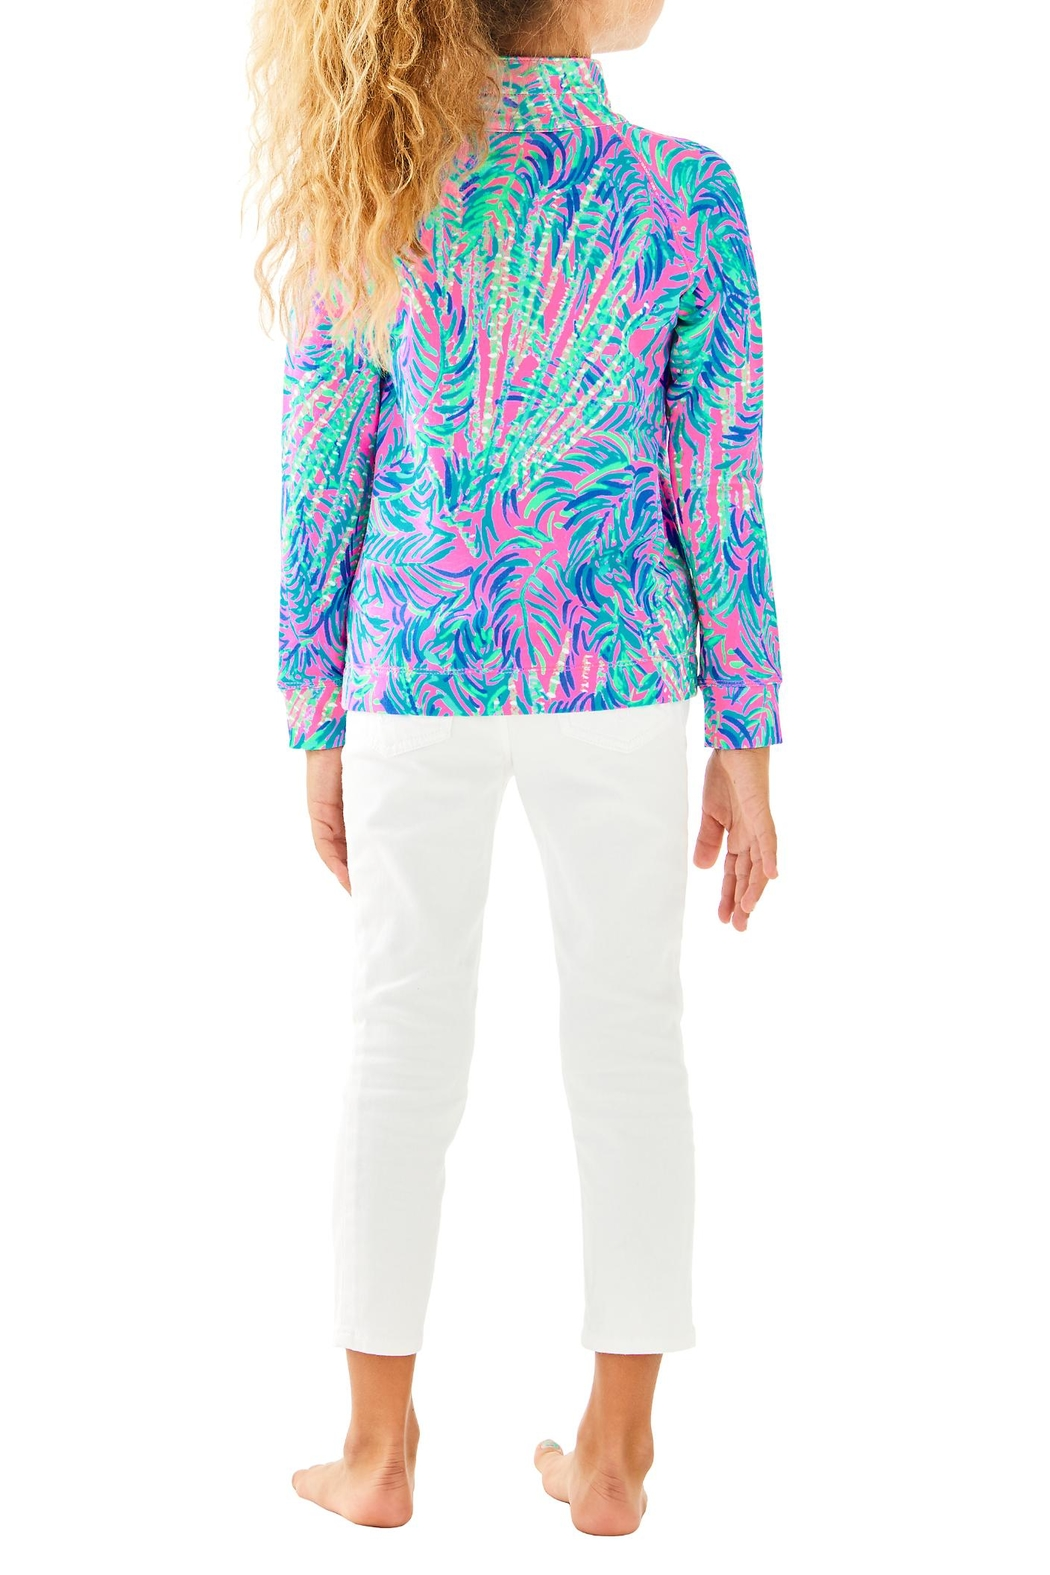 Lilly Pulitzer Little Skipper Popover - Front Full Image